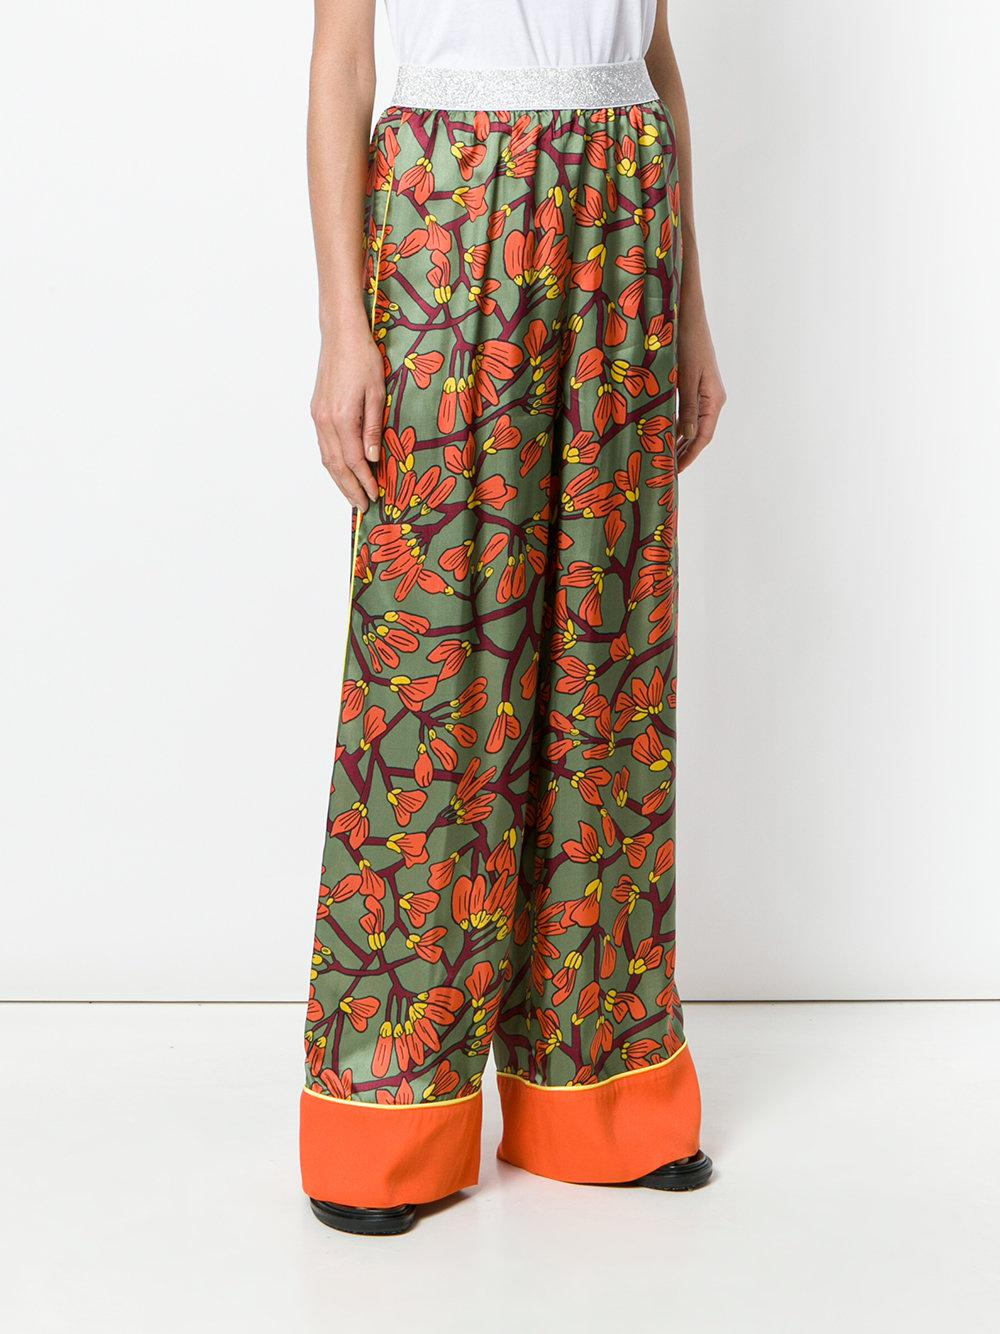 floral print palazzo trousers - Multicolour I'm Isola Marras 8rBnRk2ra